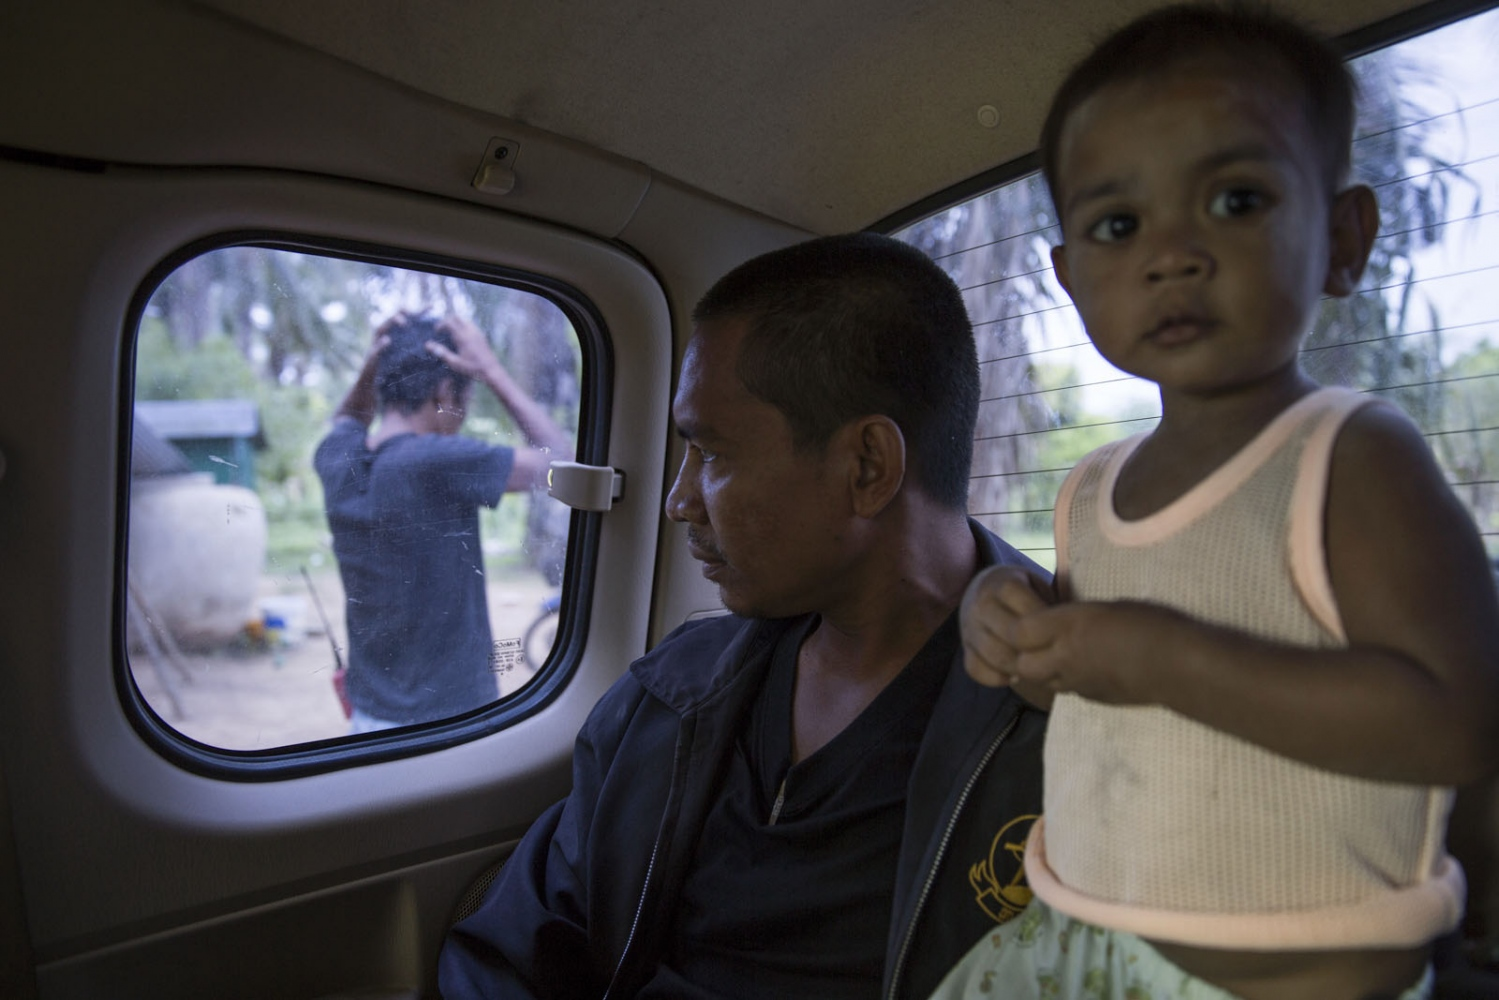 Supot Kalasong, 42, leaves the village in a pickup to travel to Bangkok to submit a document to a government office. In April 2016 Mr Kansong was shot in 6 places by an assassin who had been waiting for him to drive past as he returned to the village. He remarkably survived but has since left the community leaving his son and wife. May 2016.